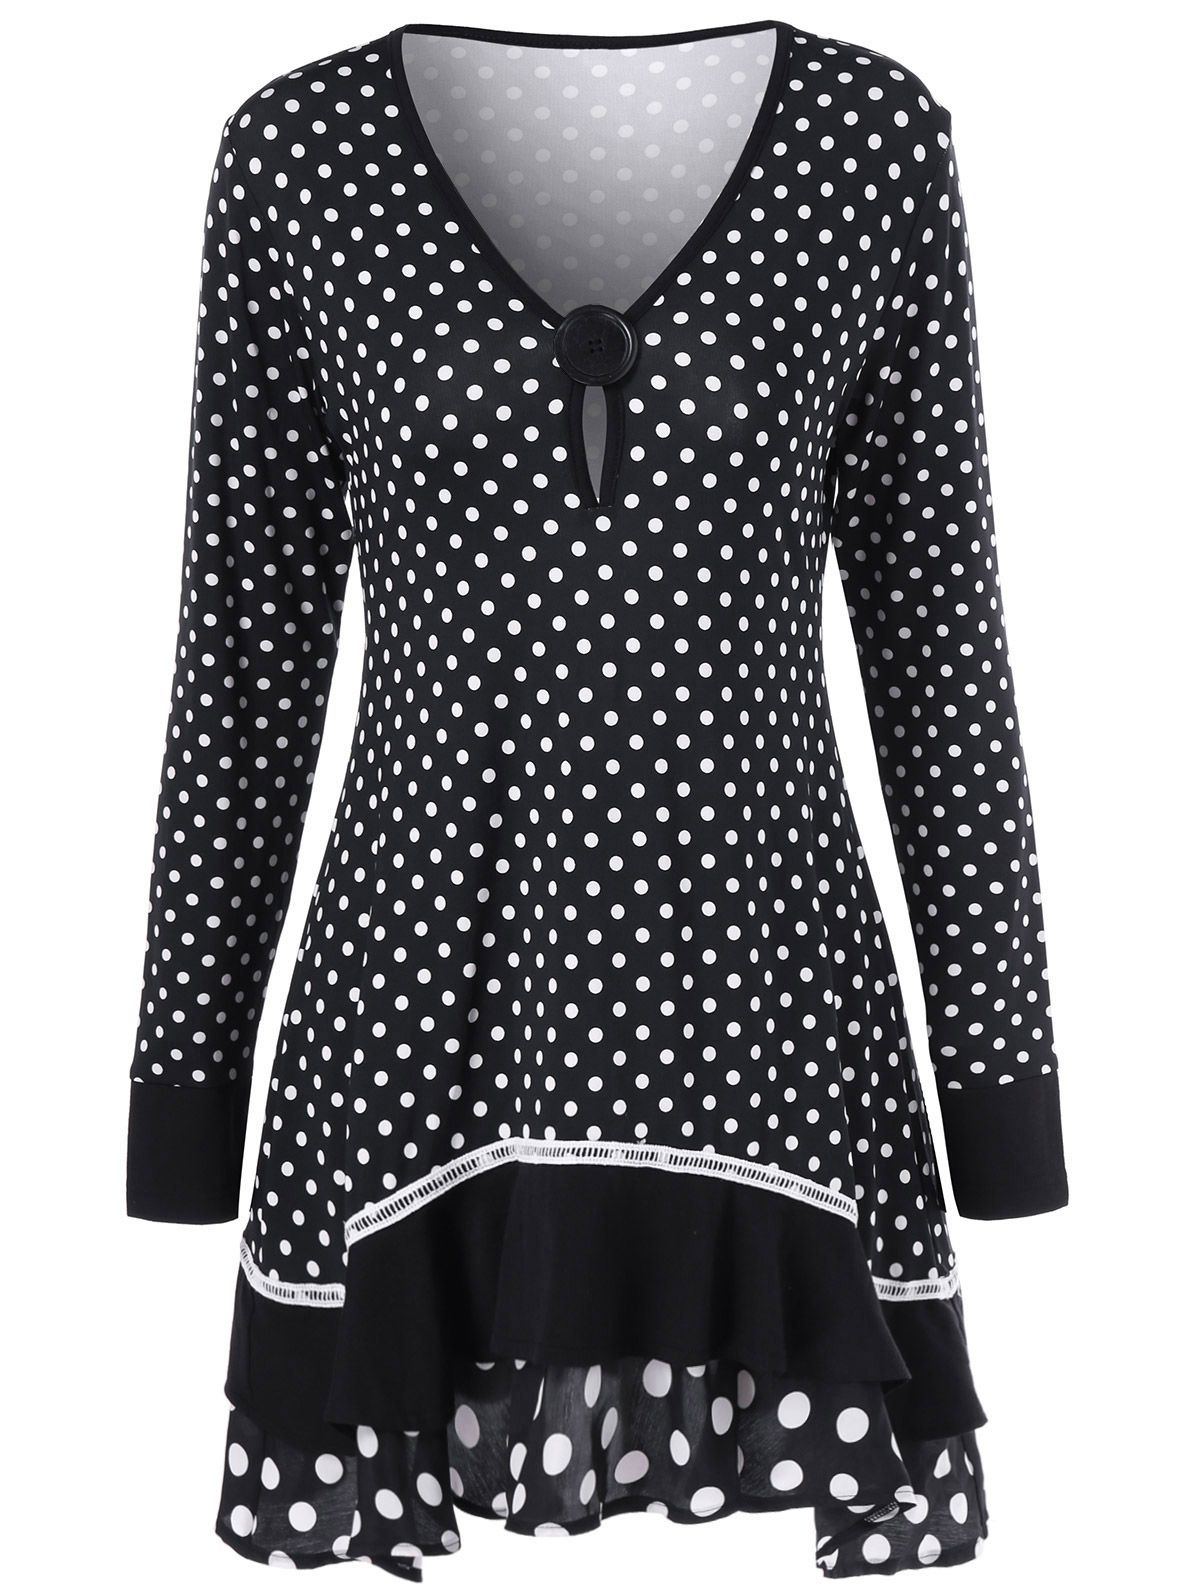 Polka dot ruffled longline tshirt dots inspiration and polka dots